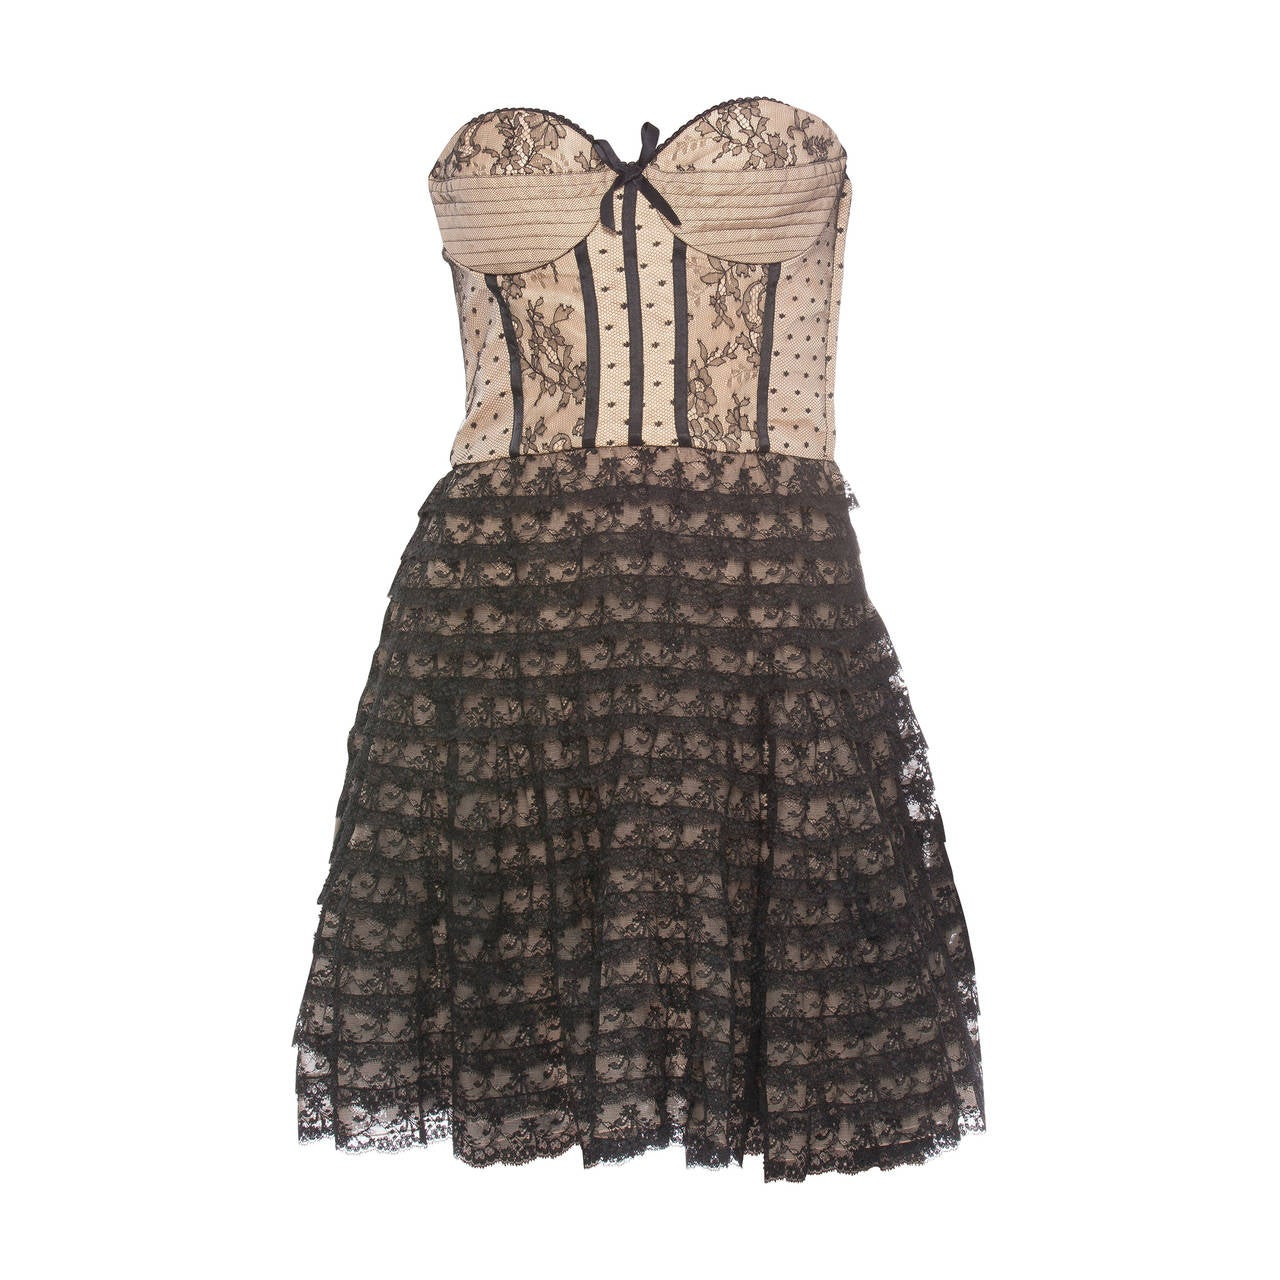 Christian Dior By John Galliano Strapless Lace Dress 1